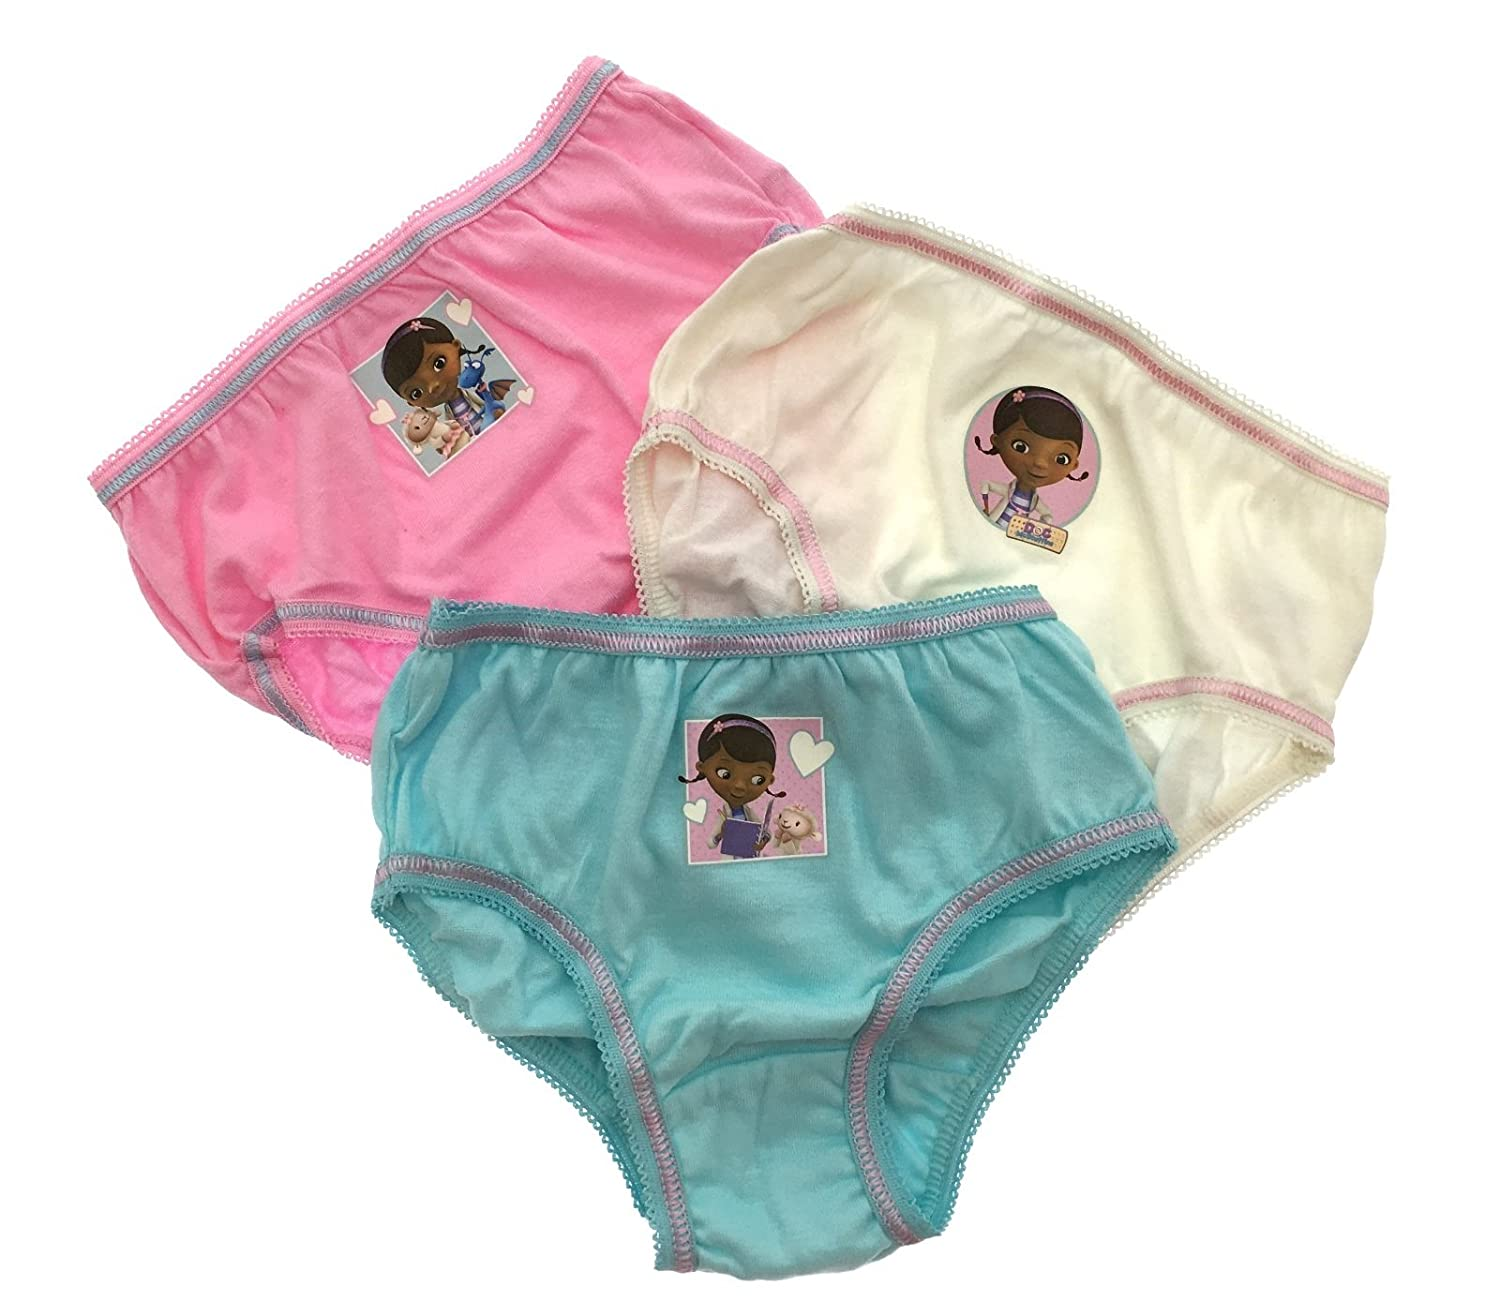 Kids Girls Childrens 3 Multipack Character Underwear Pants Briefs Knickers Sofia Disney Princess Doc McStuffins Size 1-8 Years